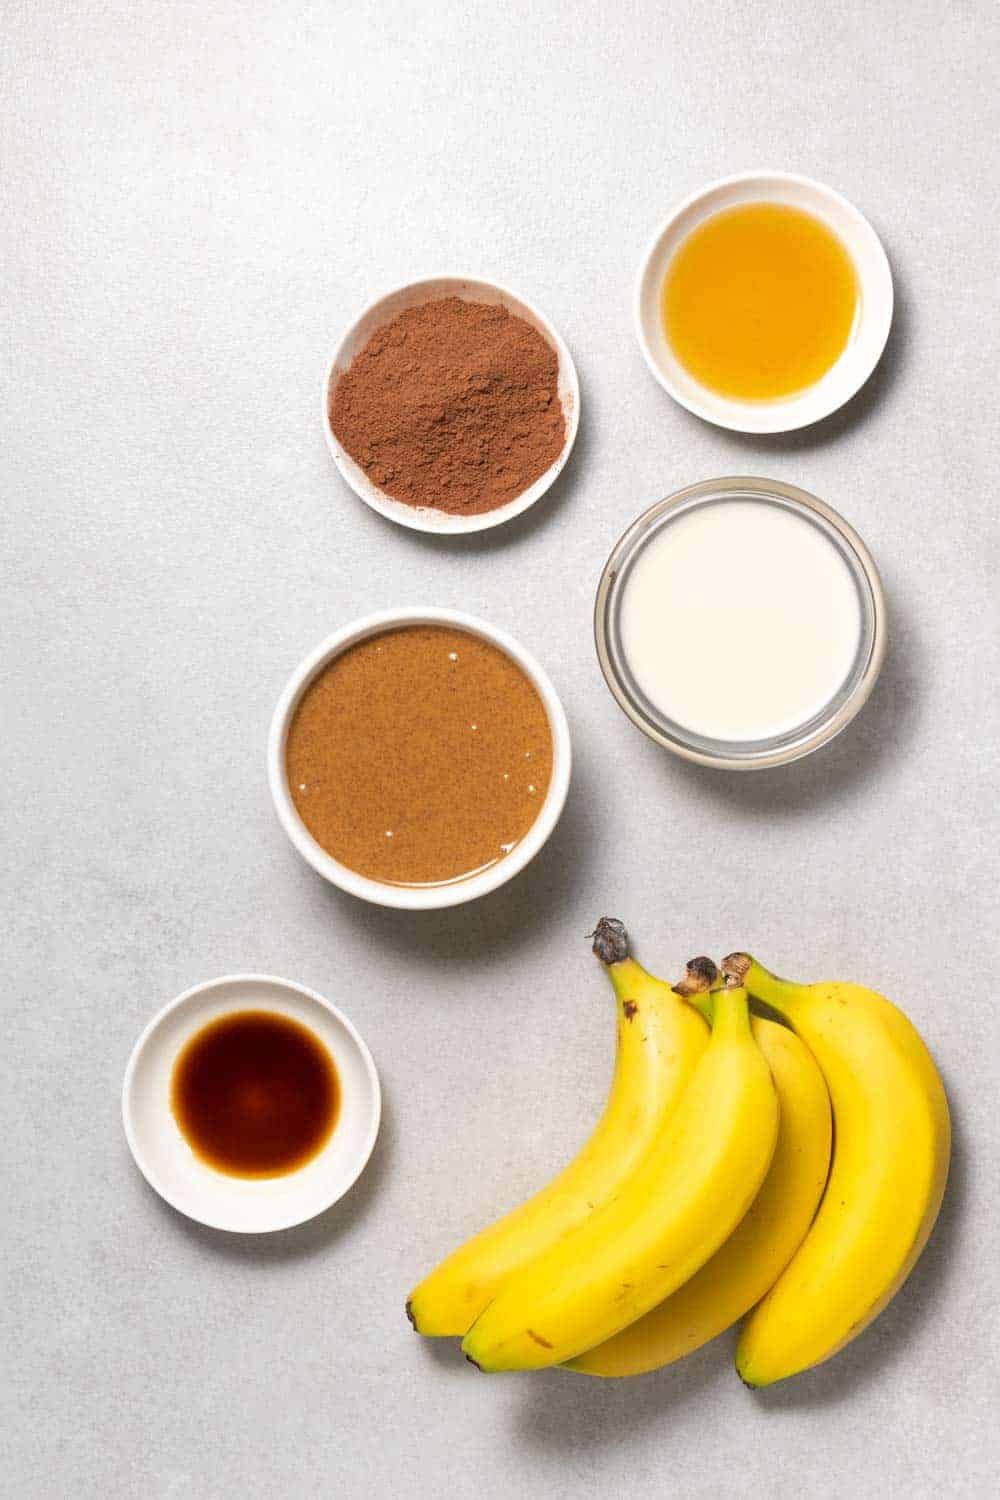 Raw ingredients for the banana popsicles